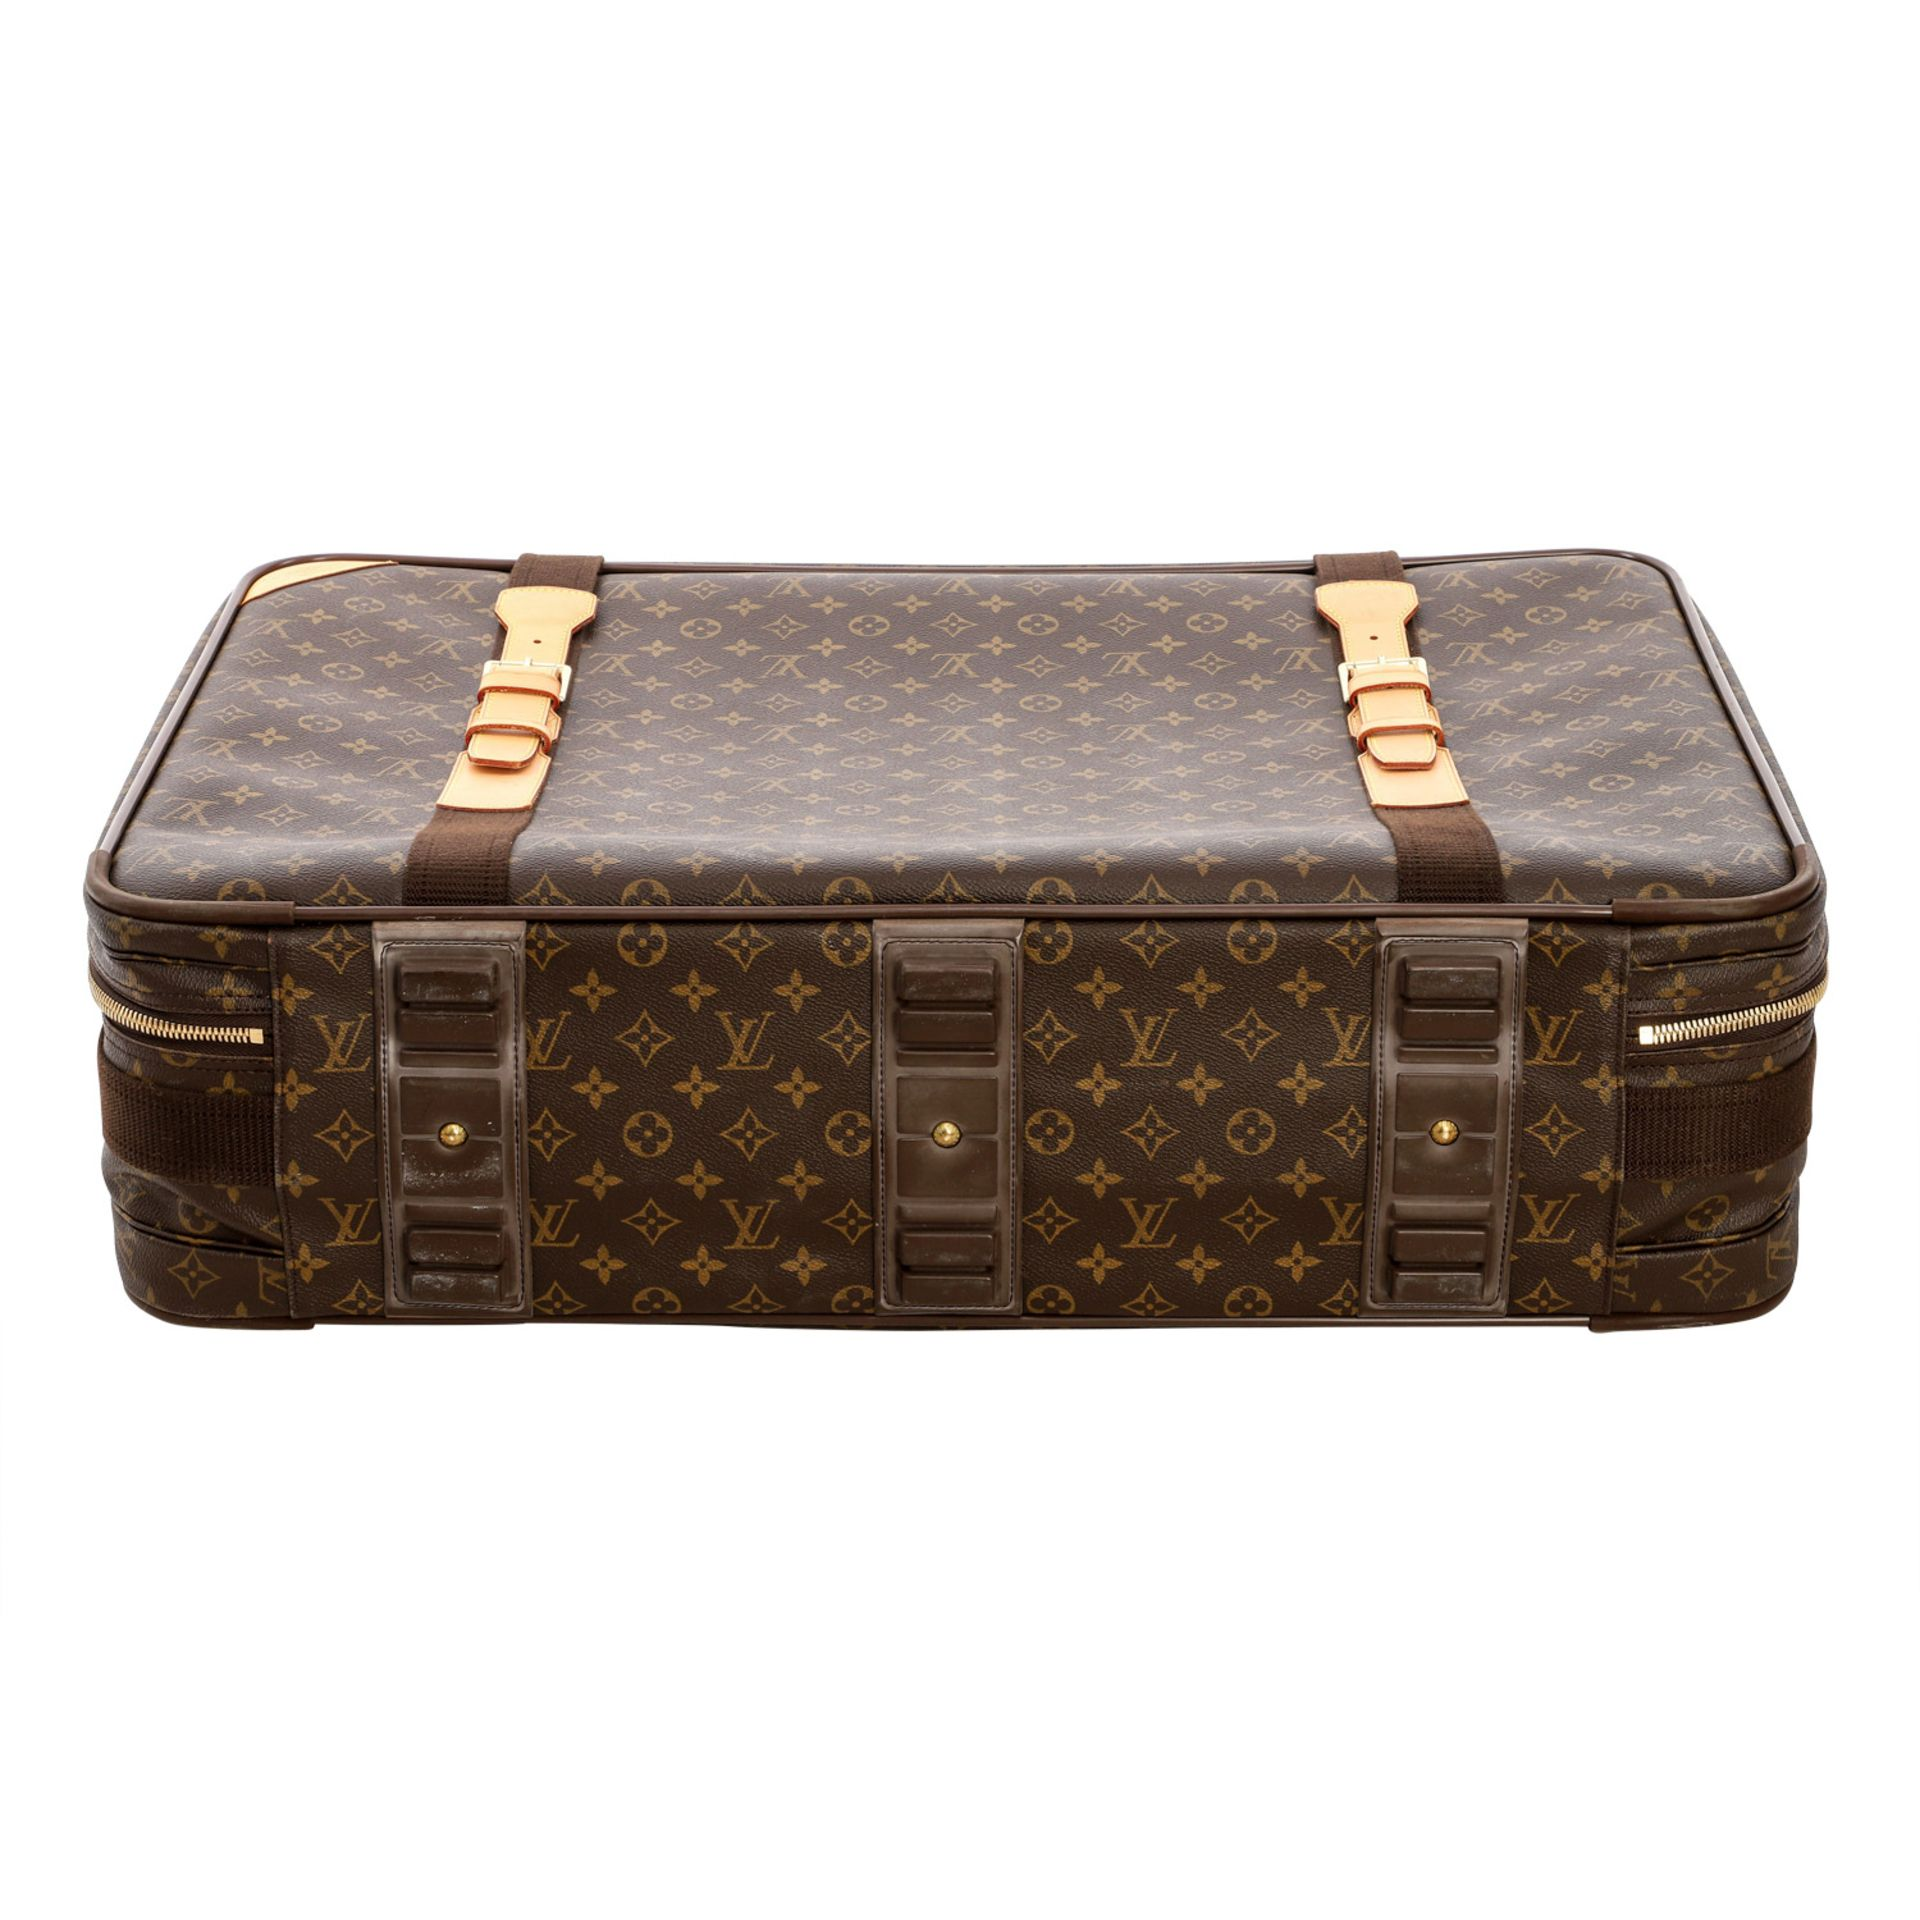 "LOUIS VUITTON Reisetasche ""SIRIUS 70"", Koll. 2000.Akt. NP.: 1.790,-€. Monogram Canva - Image 5 of 6"